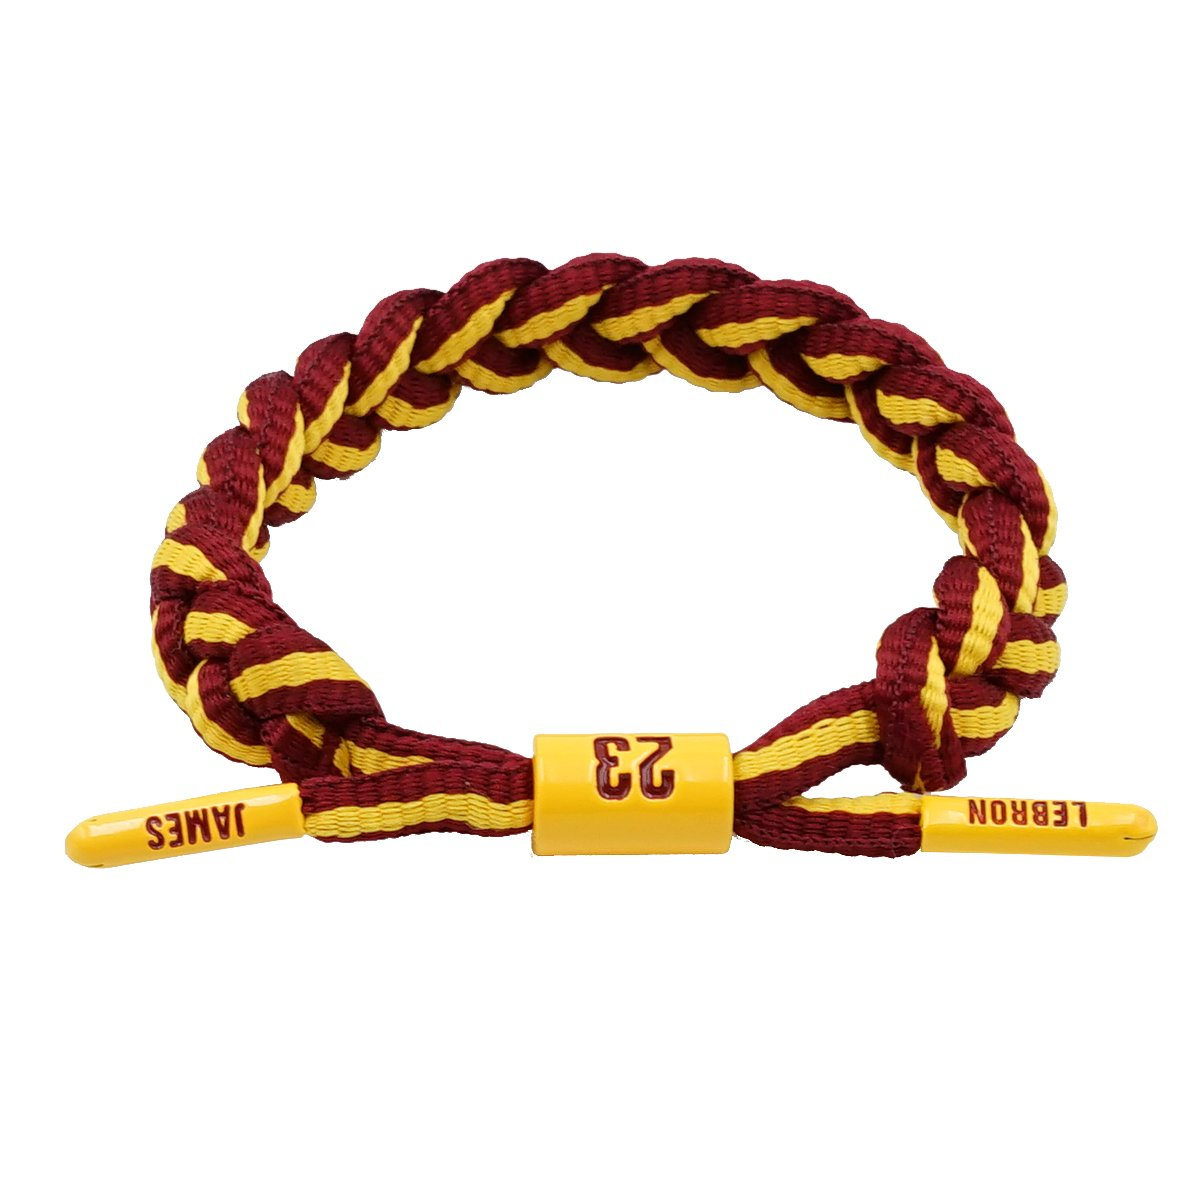 MLFuture Basketball Bracelet Wristband hand knitted adjustable bracelet NBA Player Collection LBJ Commemorative Edition